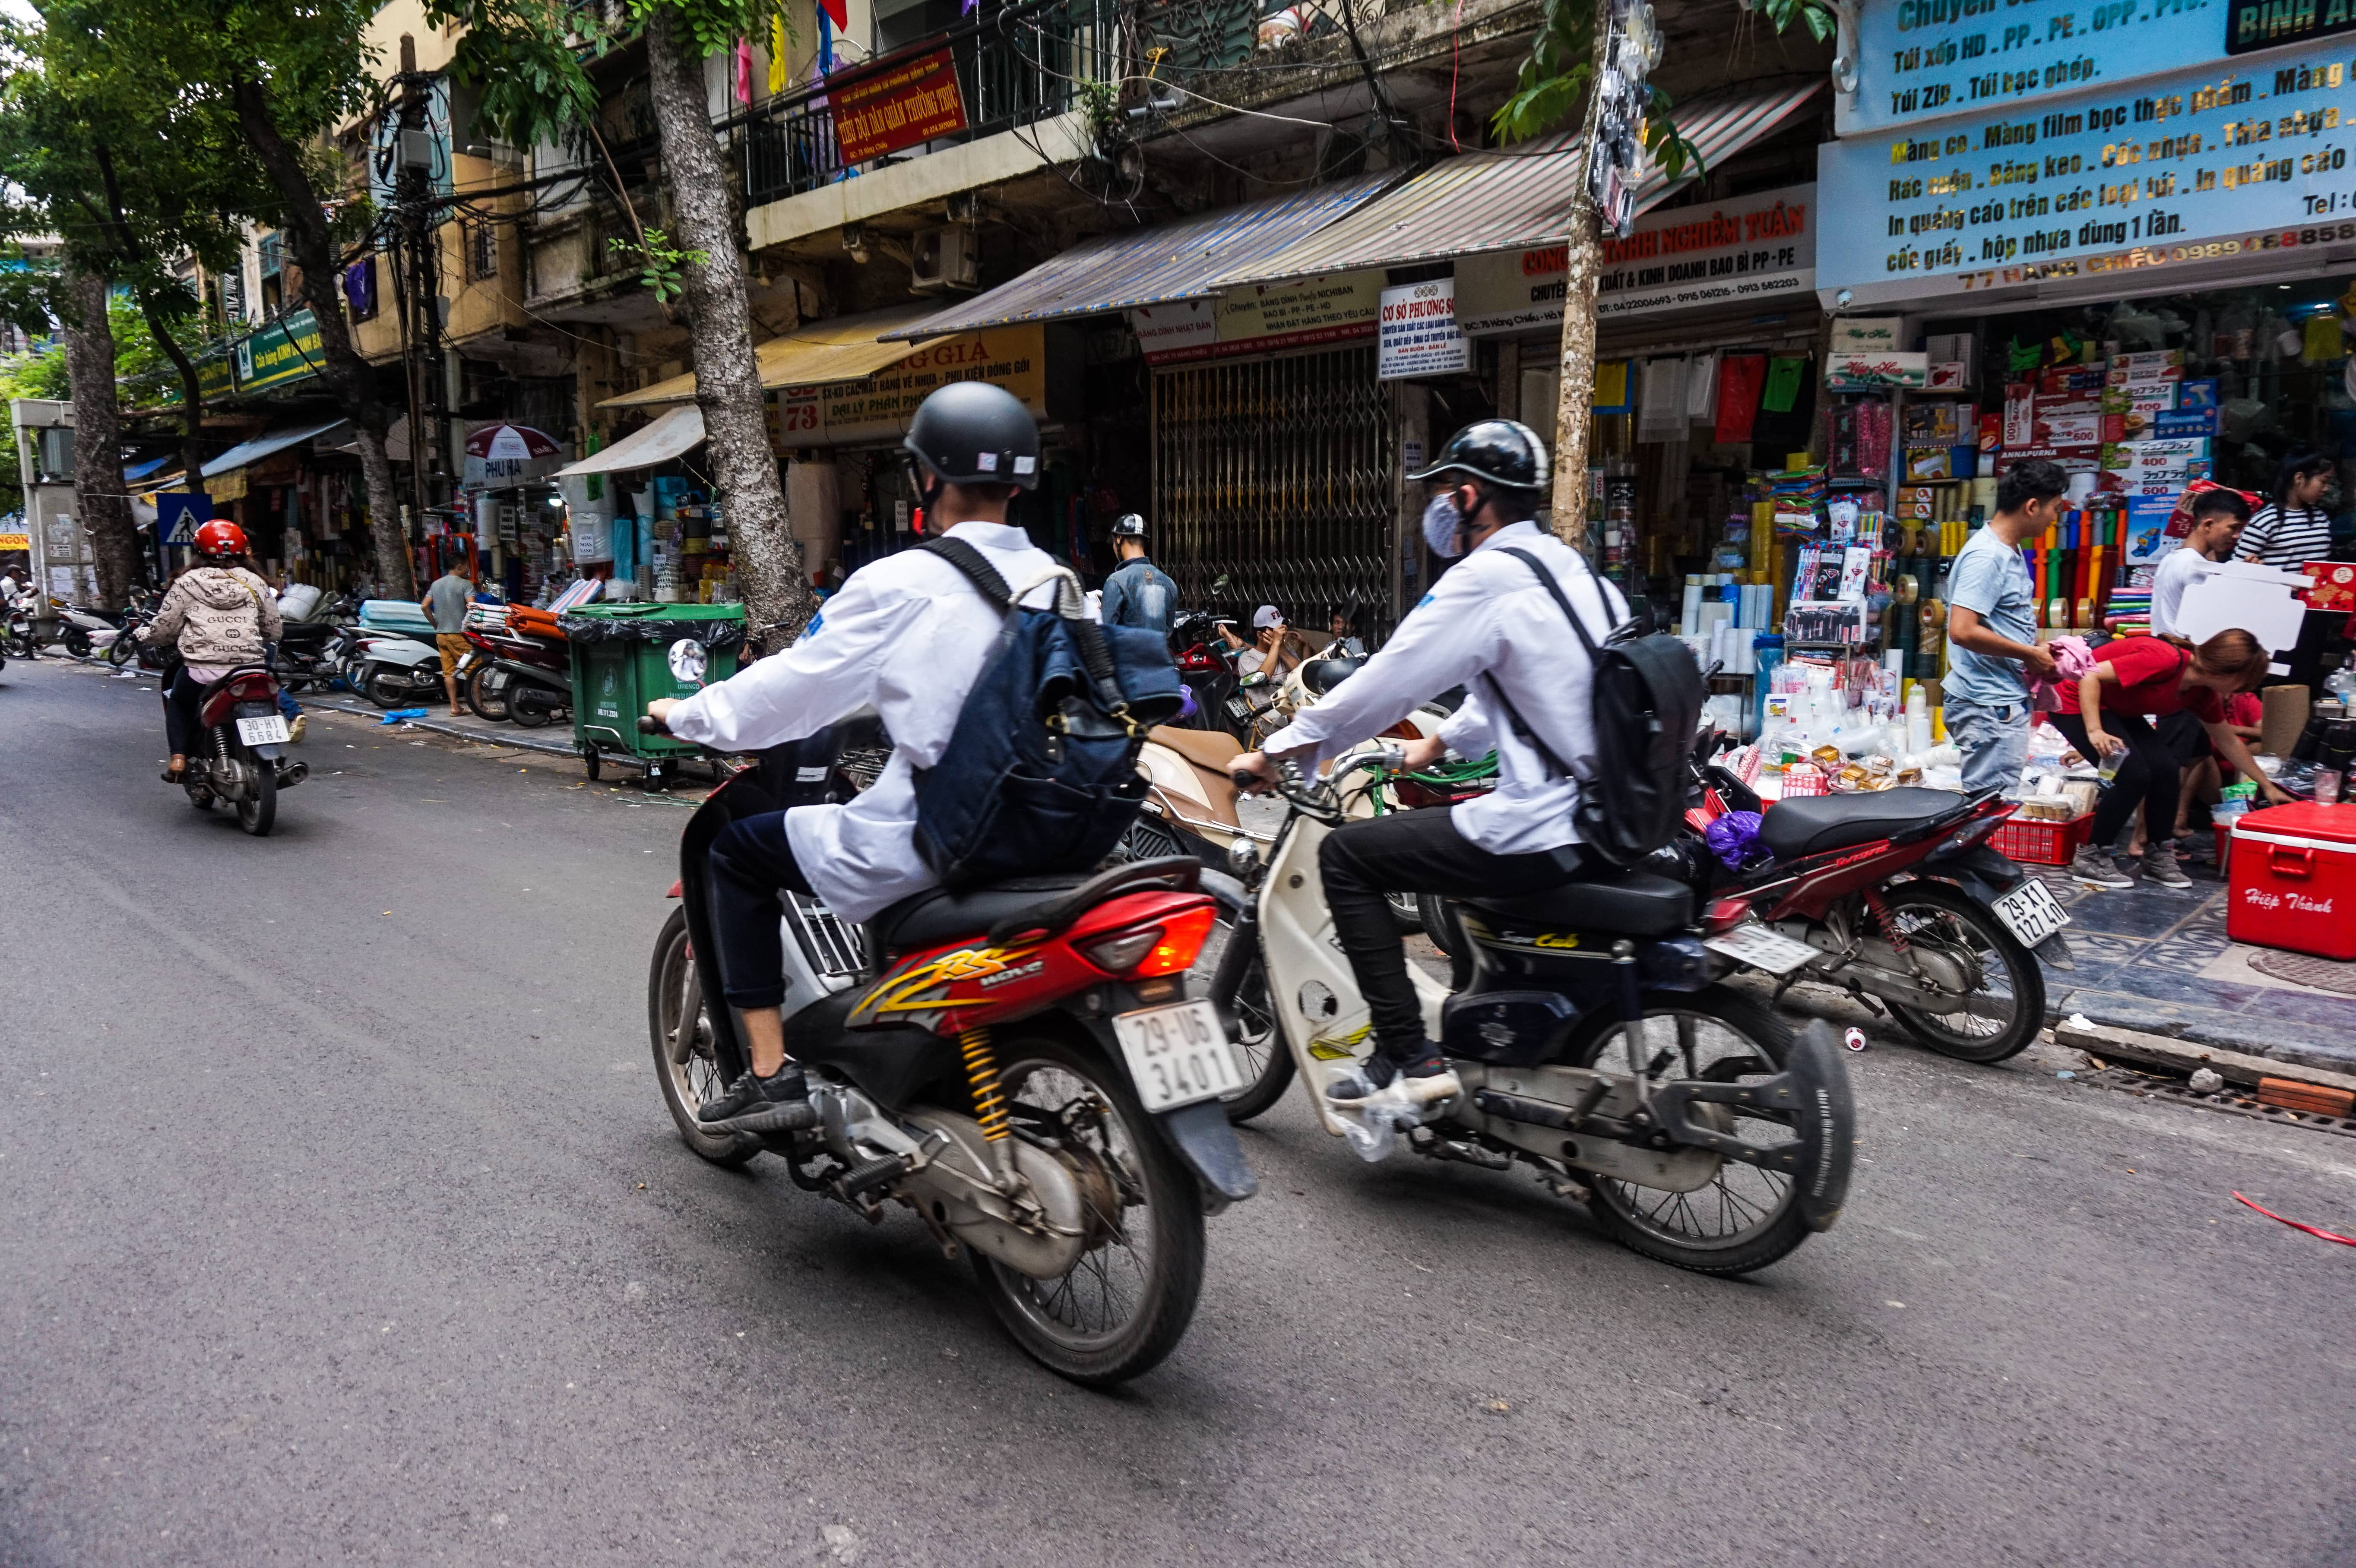 The Streets of Vietnam • 16 Remarkably Useful Things to Know Before Traveling to Vietnam | The Wanderful Me